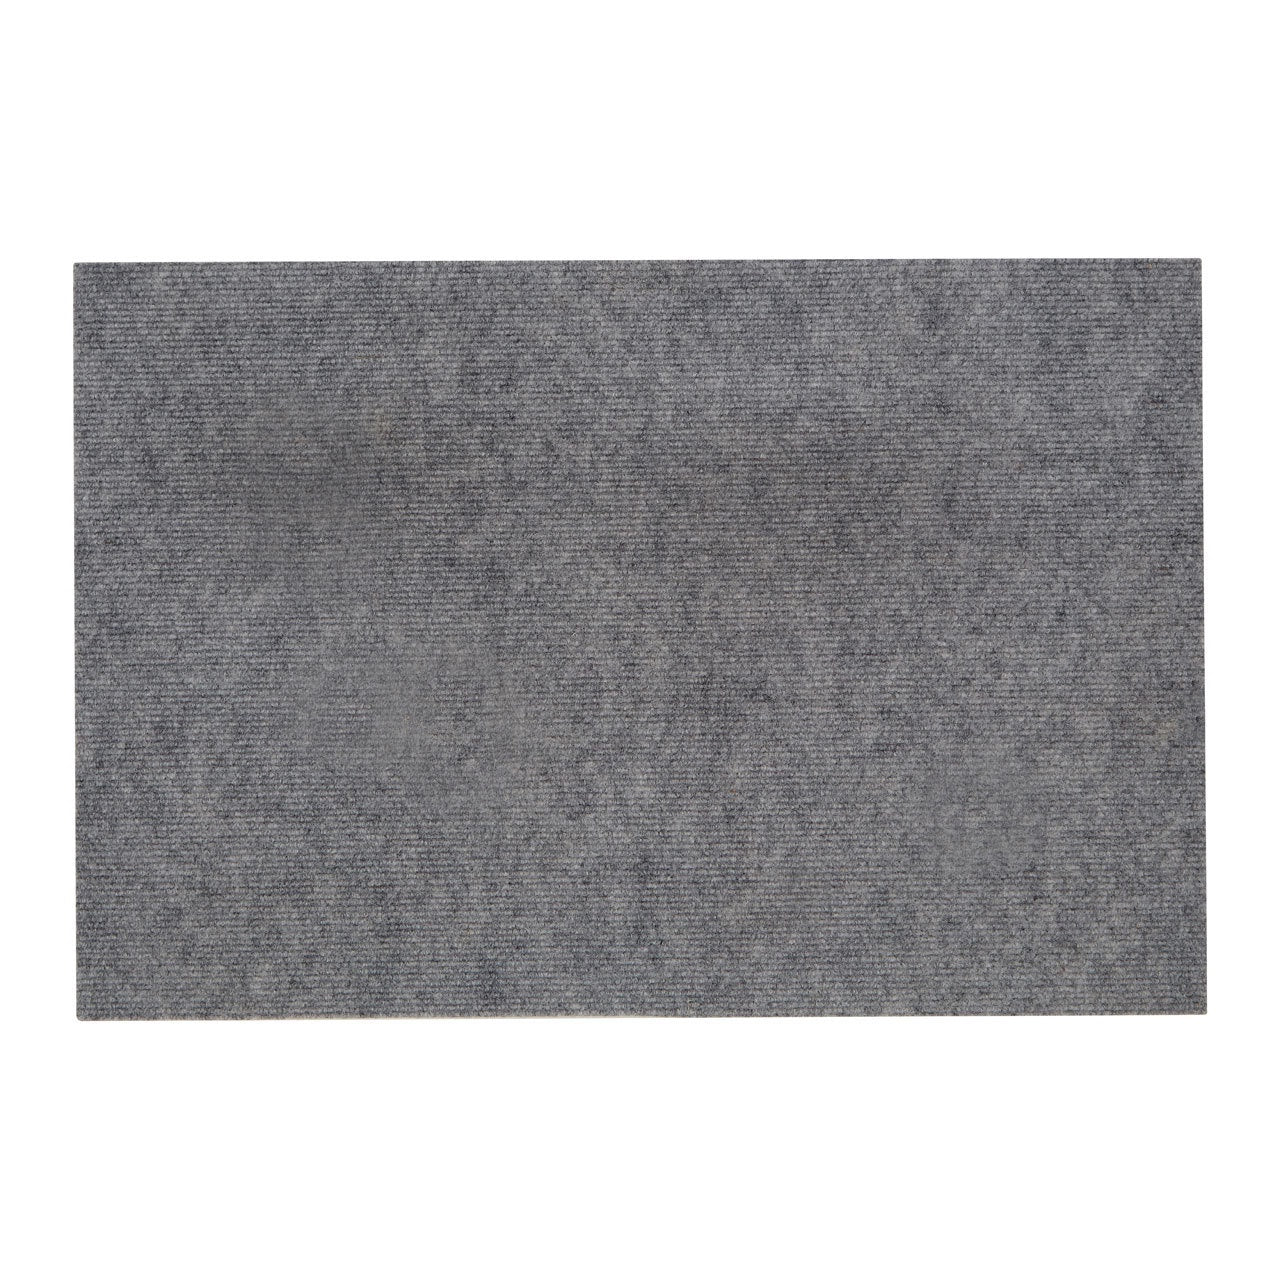 PREMIER LIGHT GREY DOORMAT 60CM X 40CM -1901744